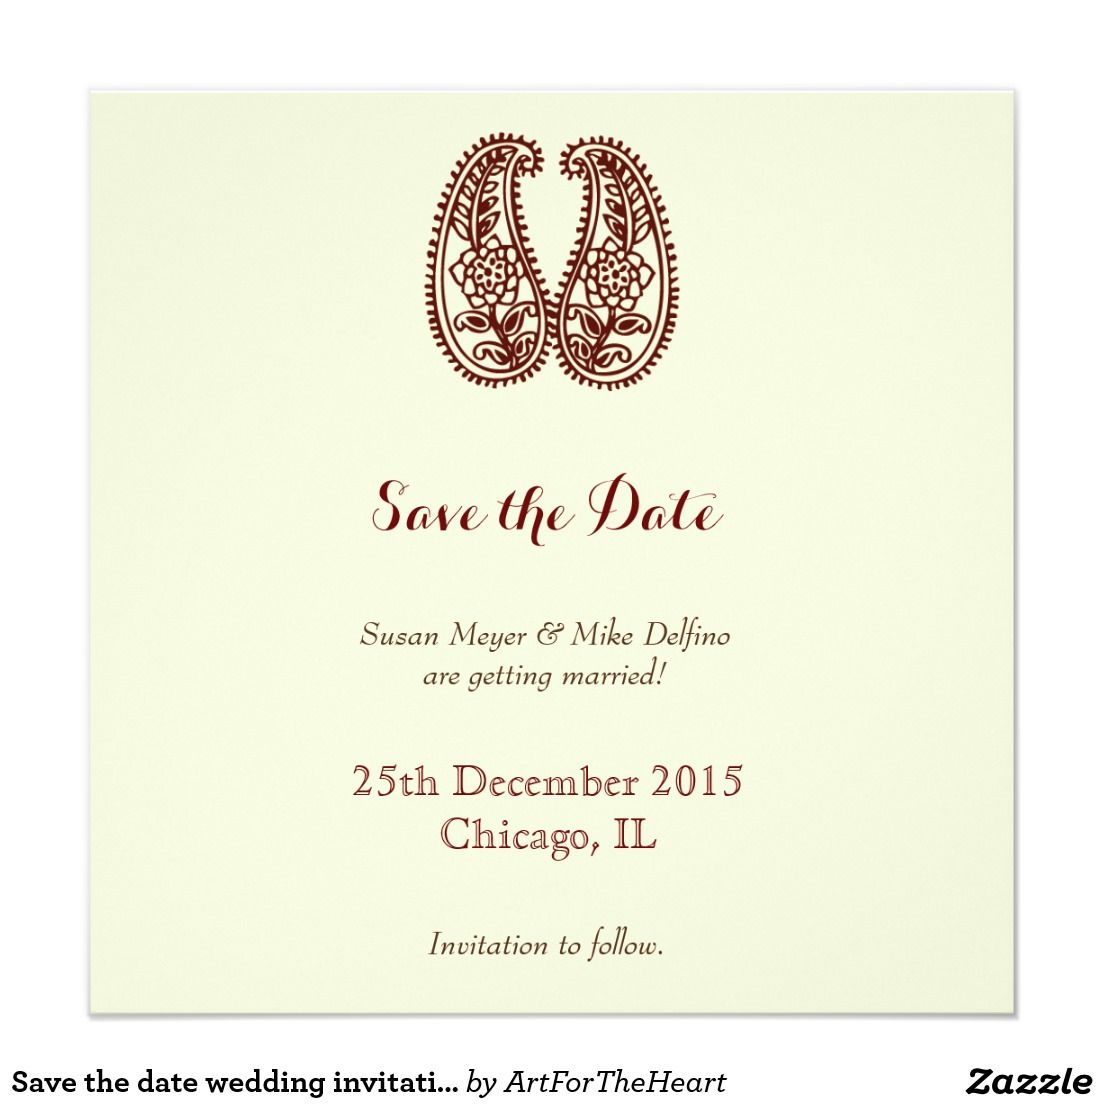 Save the date wedding invitation card brown white wedding save the date wedding invitation card brown white stopboris Images